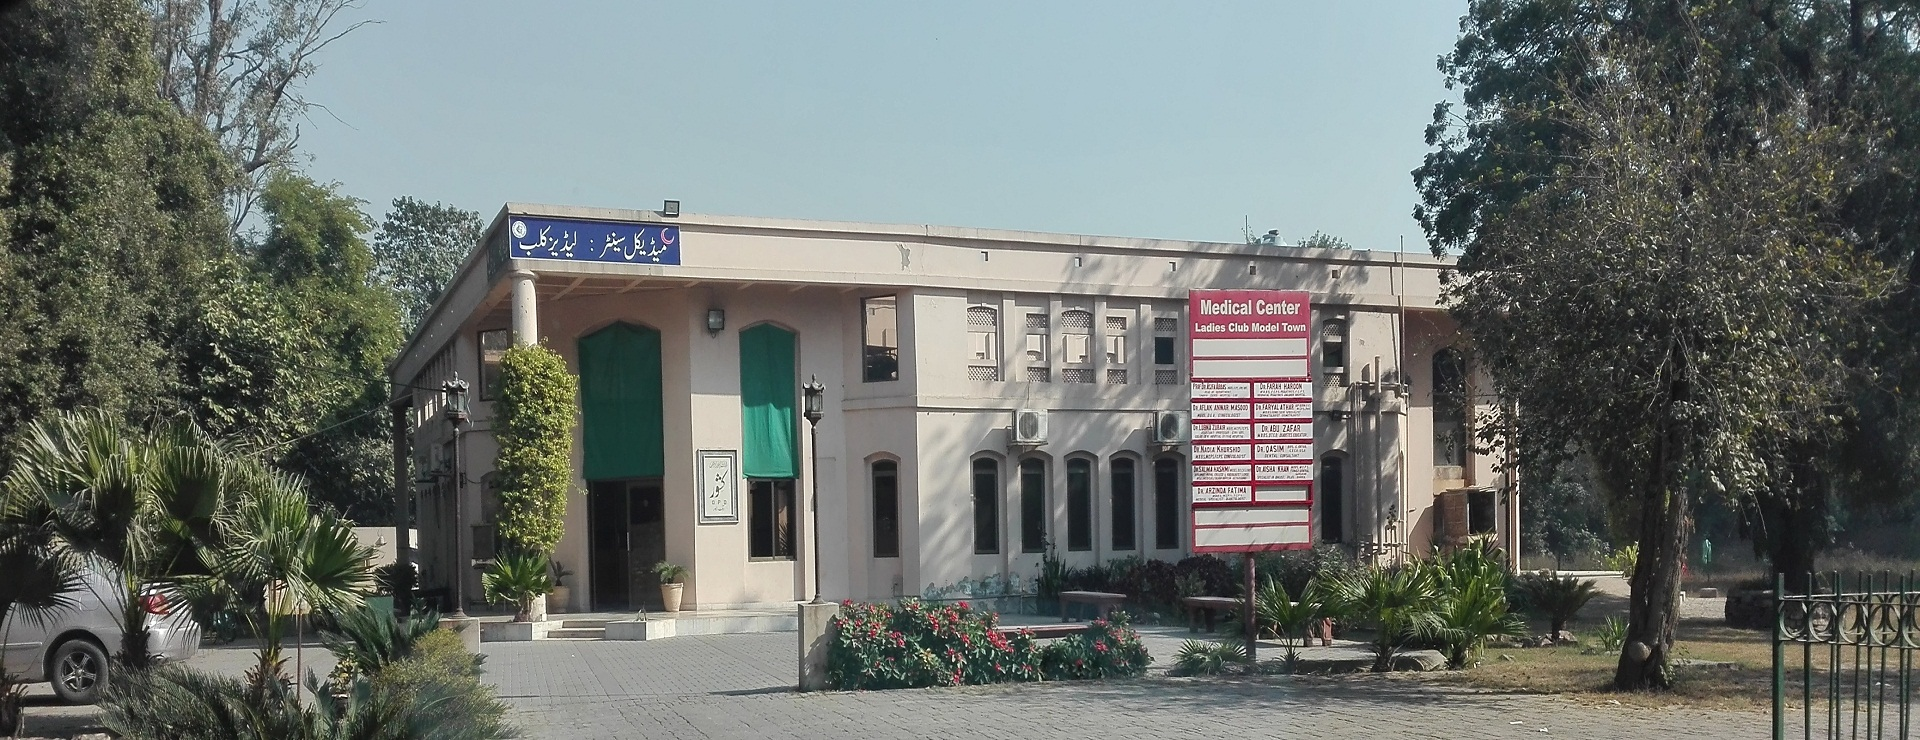 Medical center ladies club model town front